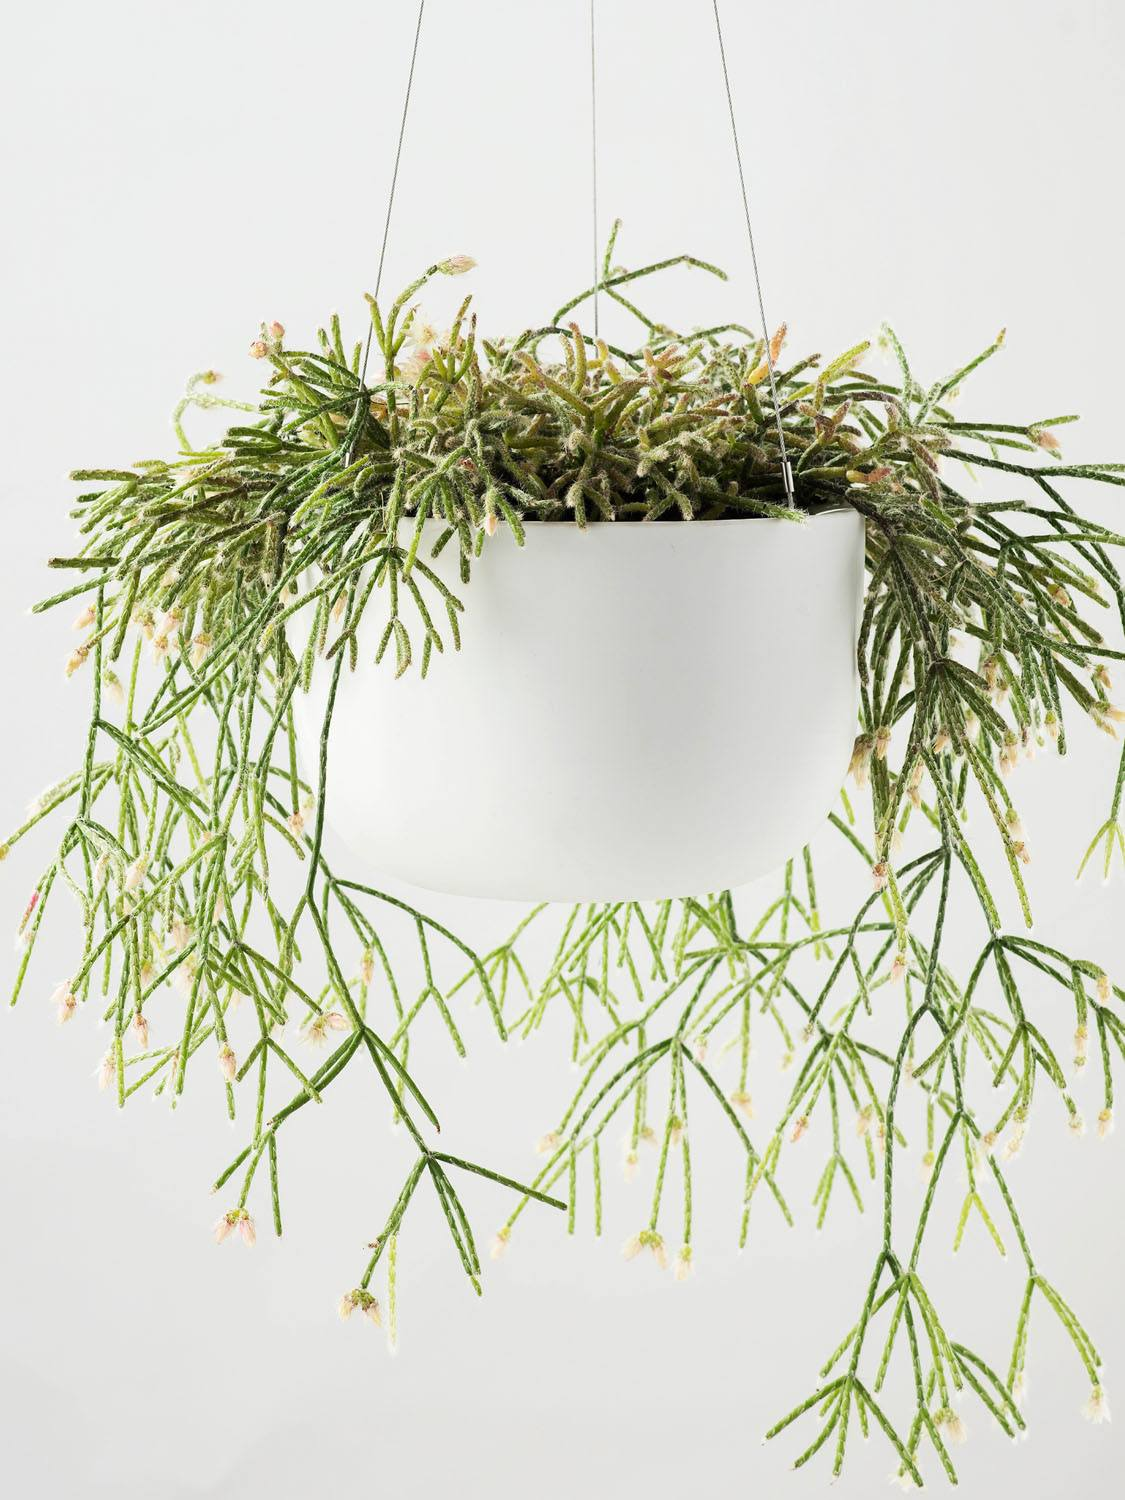 Angus & Celeste Raw Earth Hanging Planter White